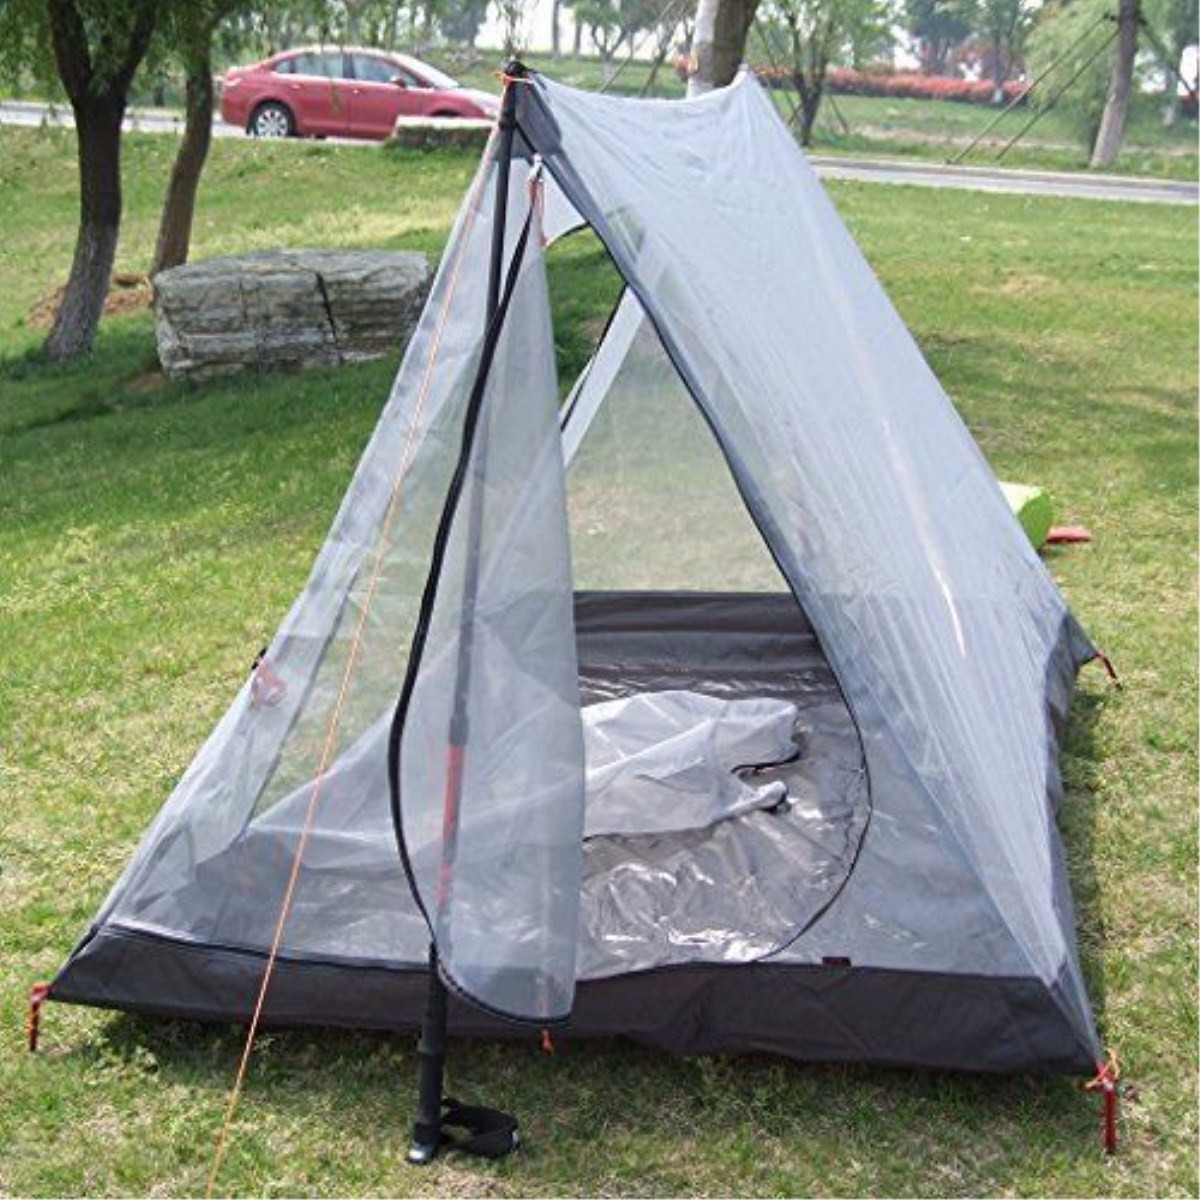 Outdoor 2 Persons Anti-mosquito Tent Sunshade Camping Picnic Sun Shelter Canopy